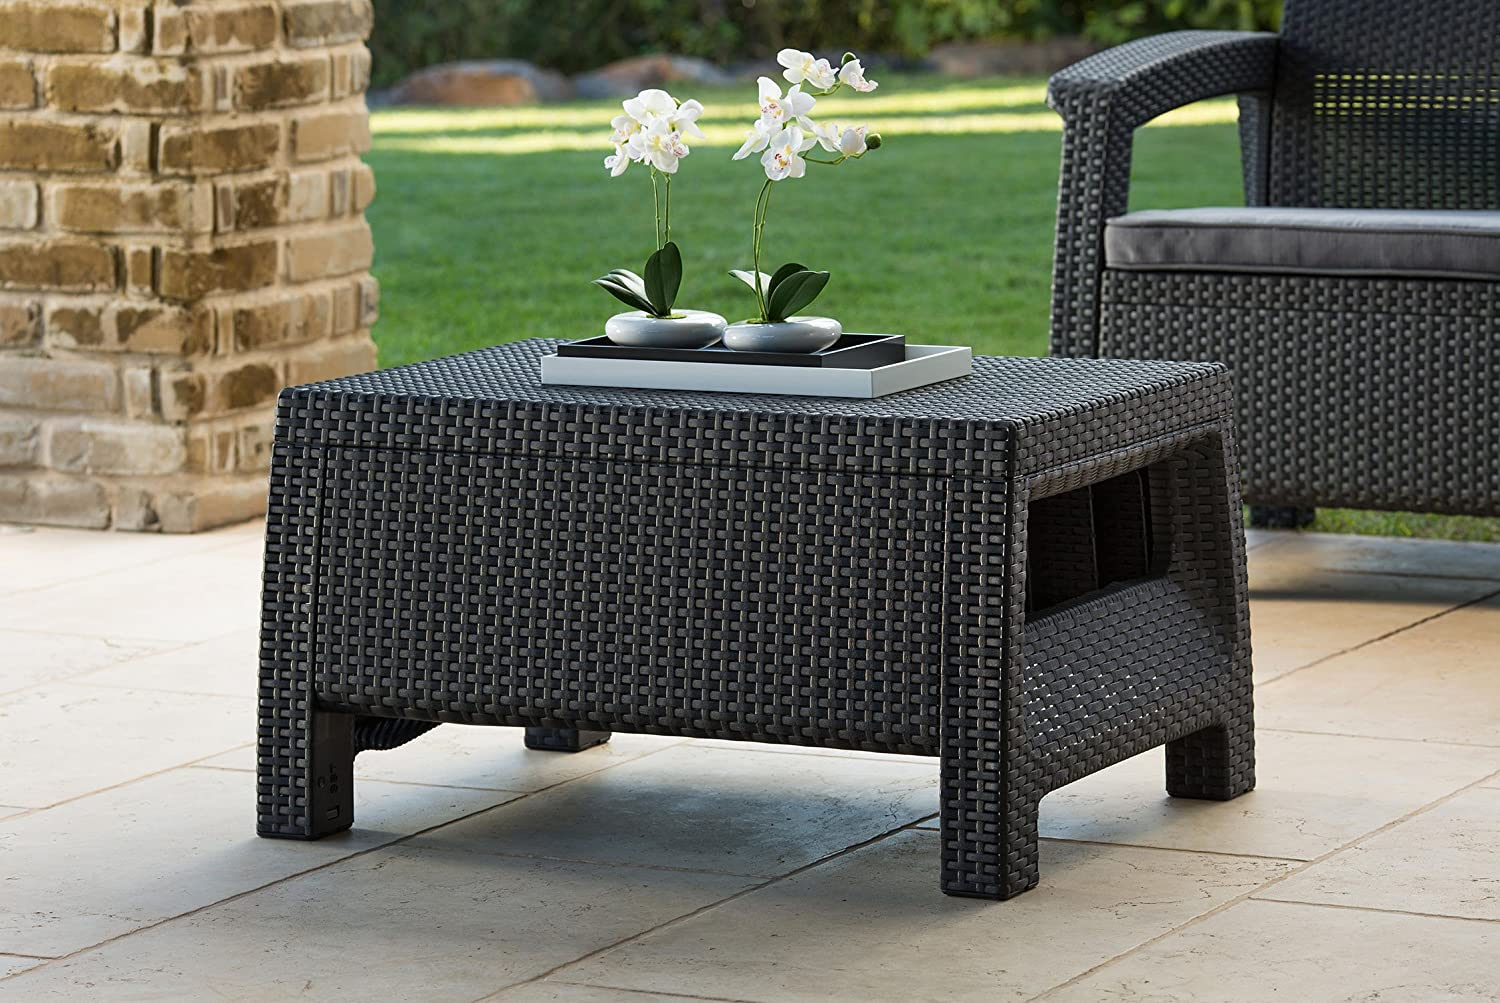 Best Garden Furniture Sets Reviews and Buying Guide 2018 2